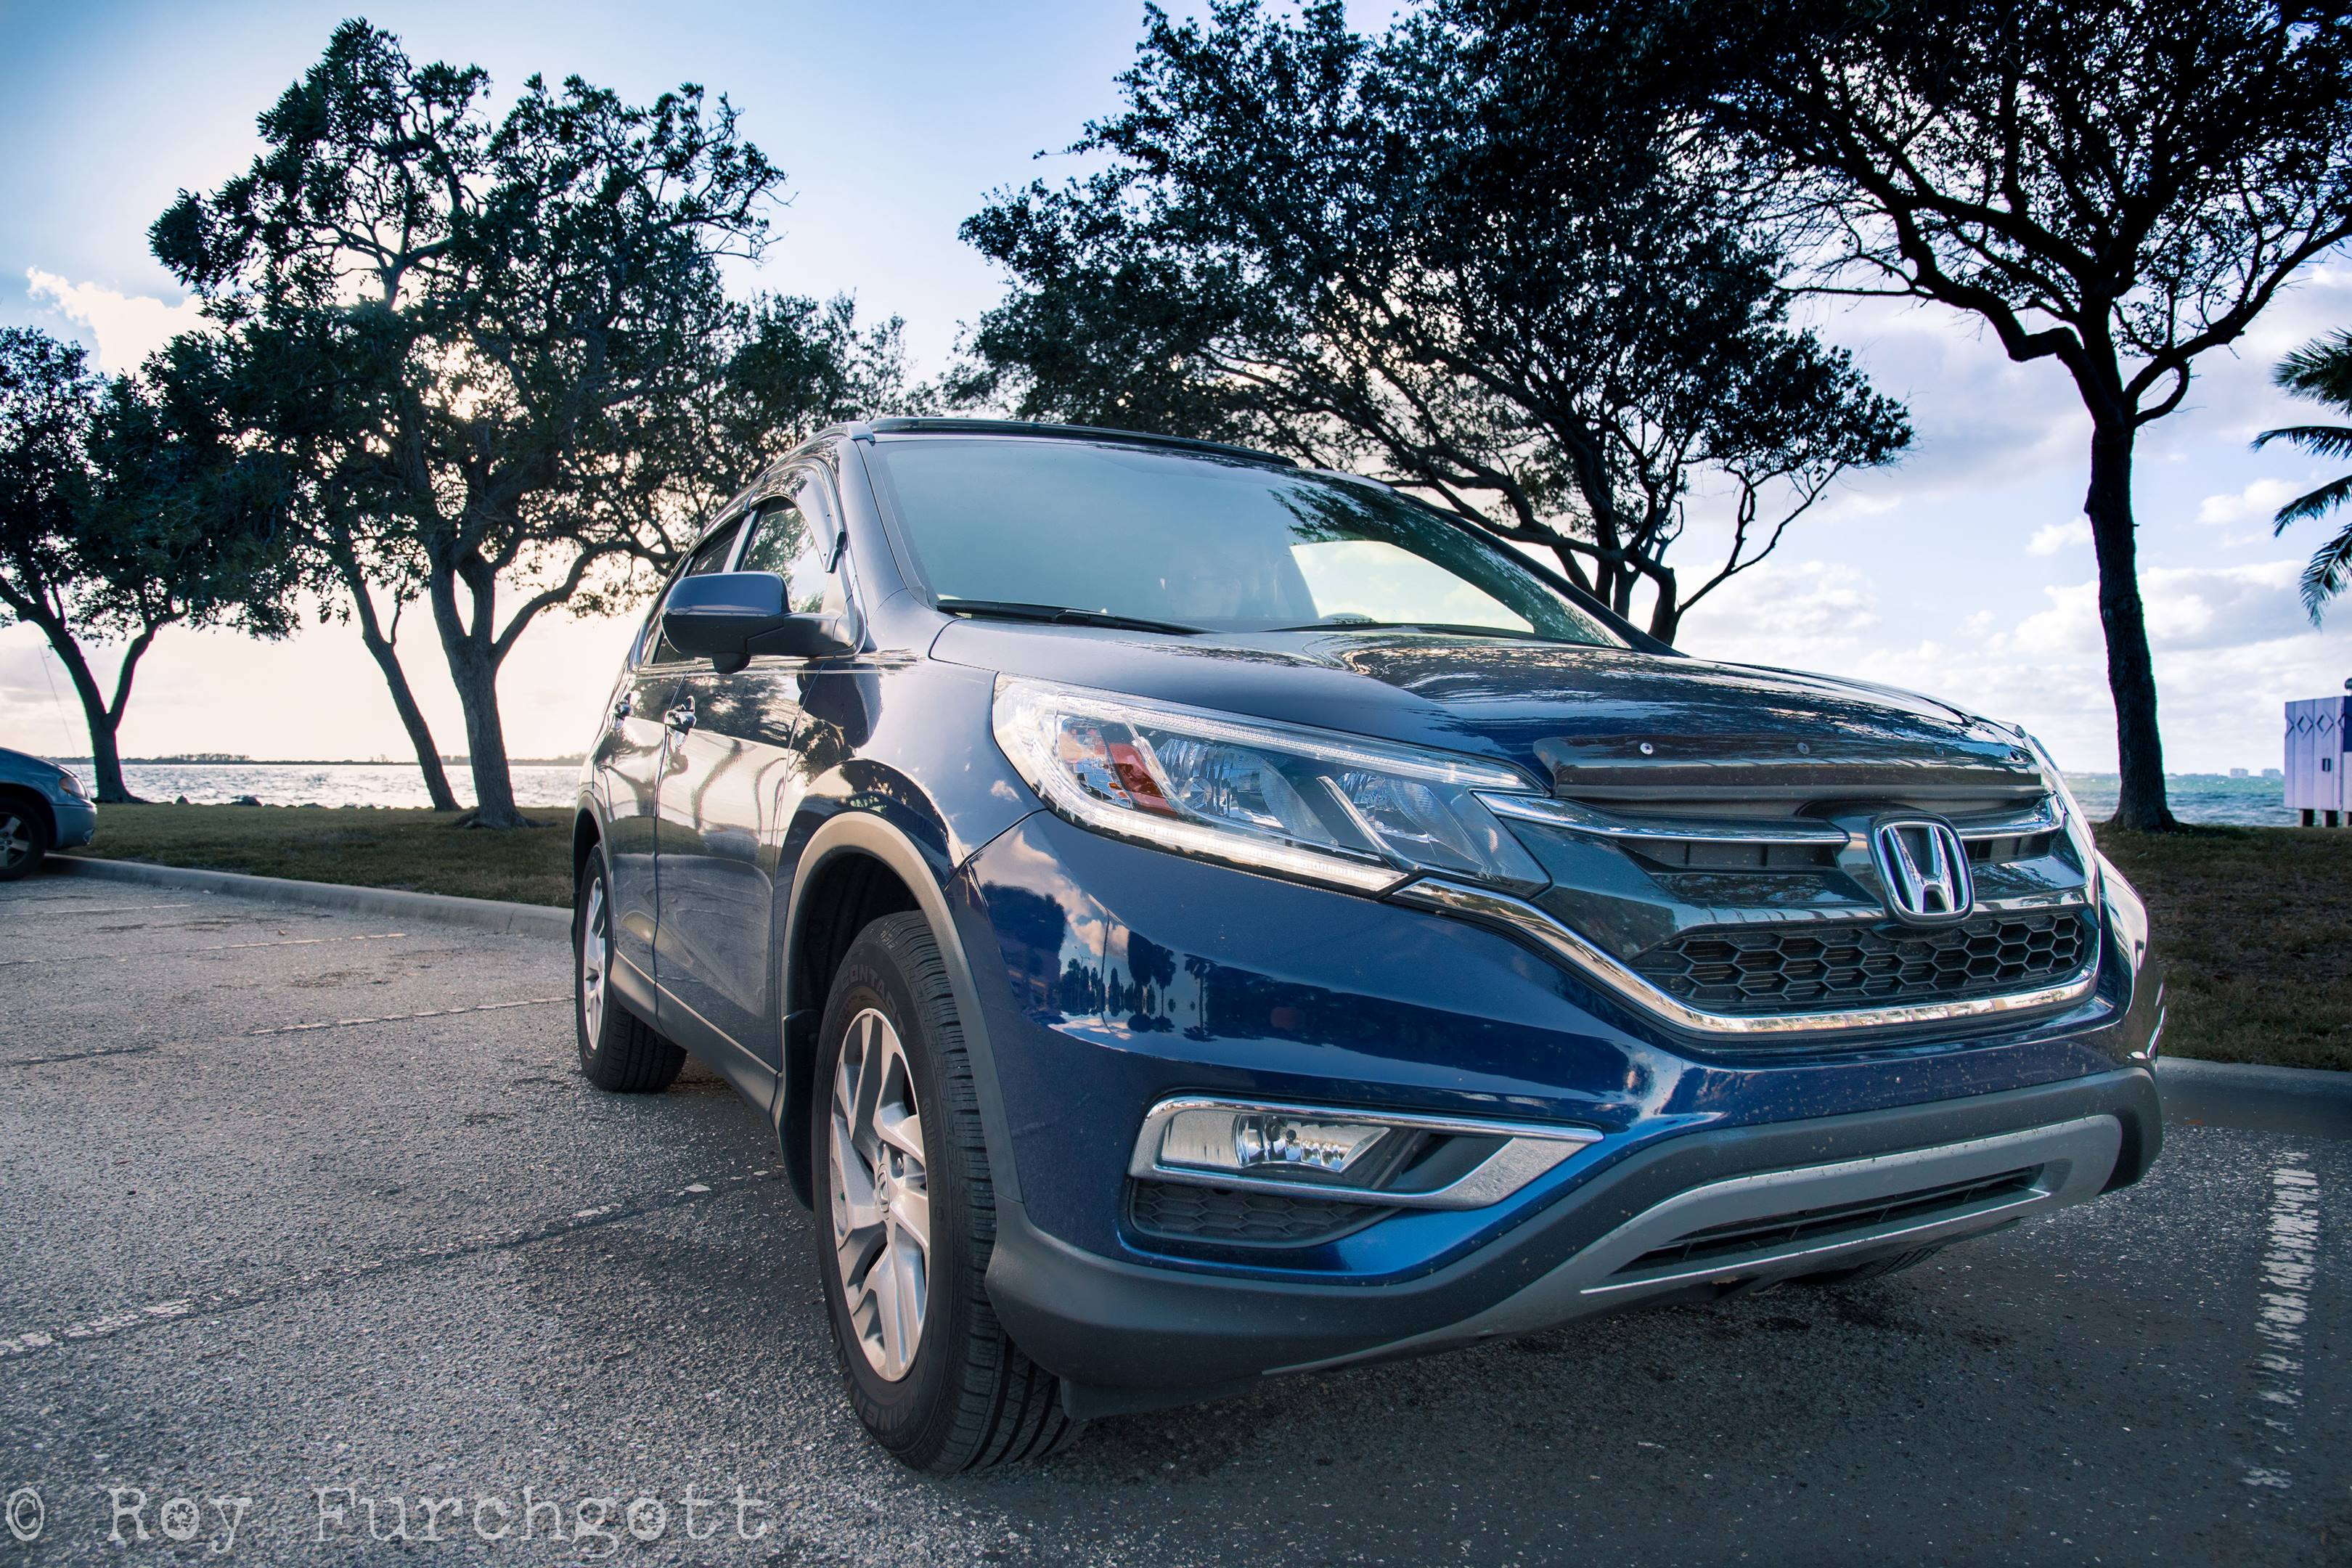 A wide-angle lens makes even a dirty Honda CRV look aggressive, which is useful for those beauty shots—but not for sales. And watch for distracting reflections in the paint.